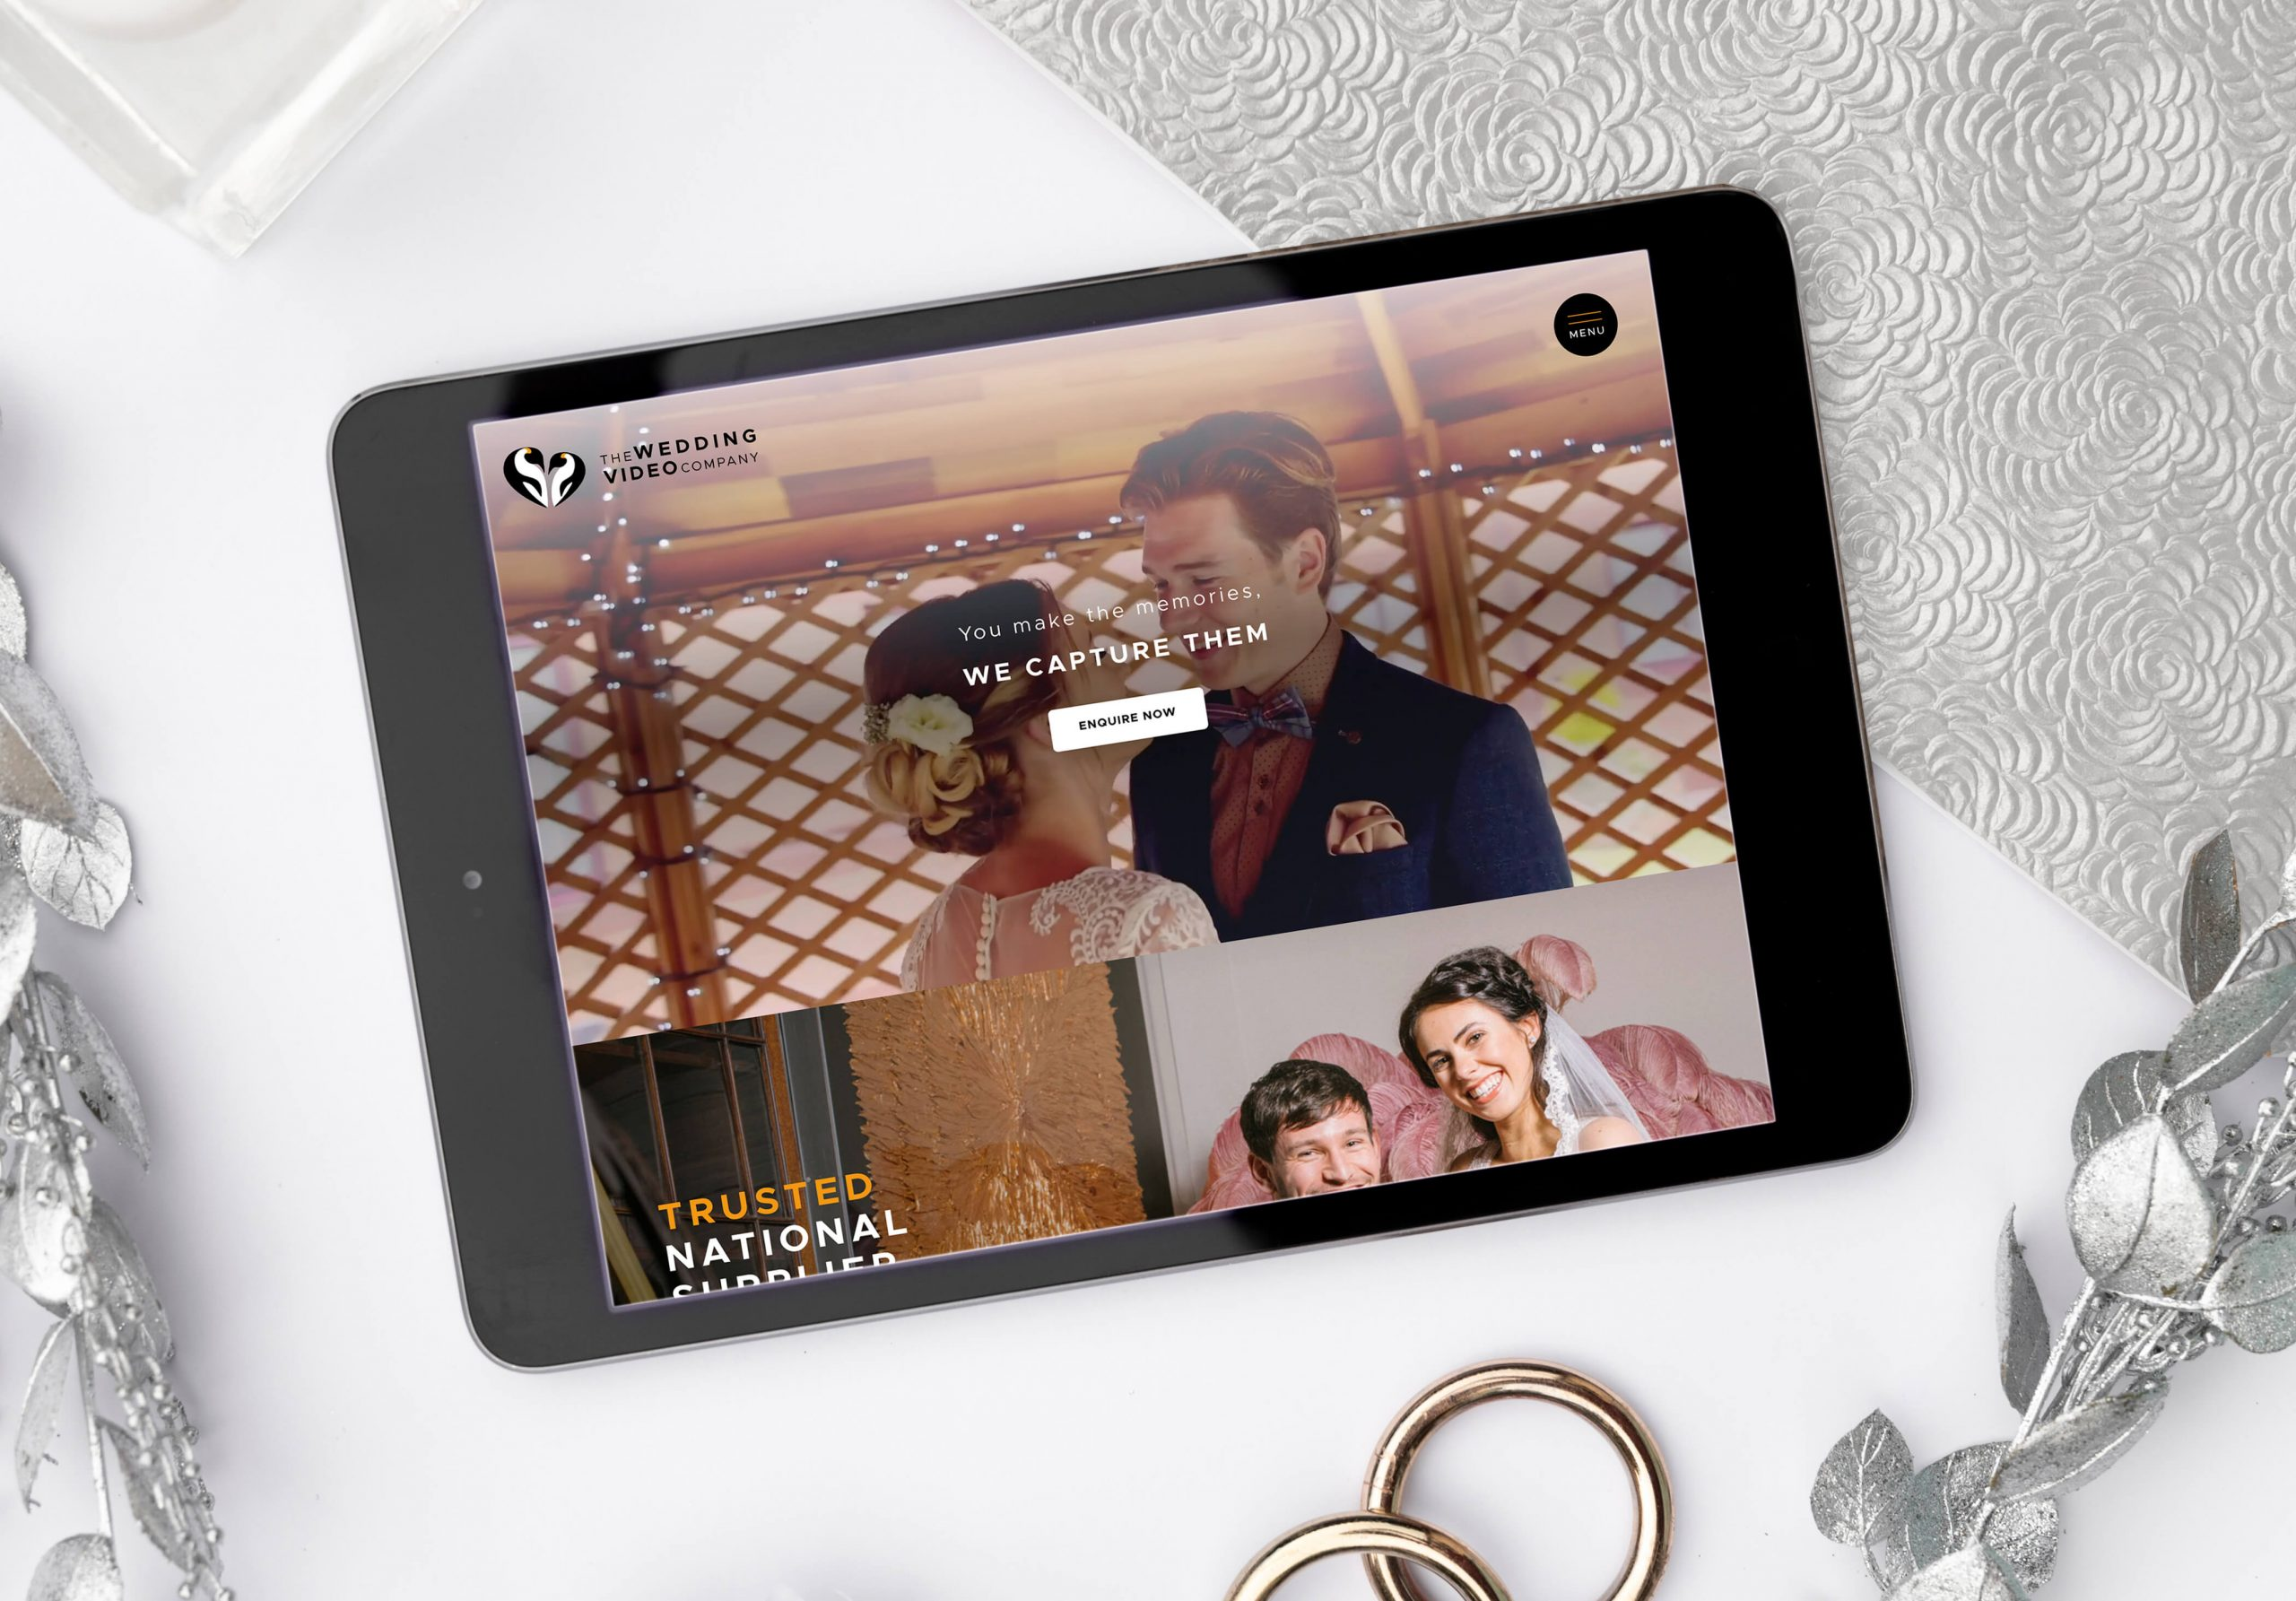 The Wedding Video Company website displayed on tablet device screen